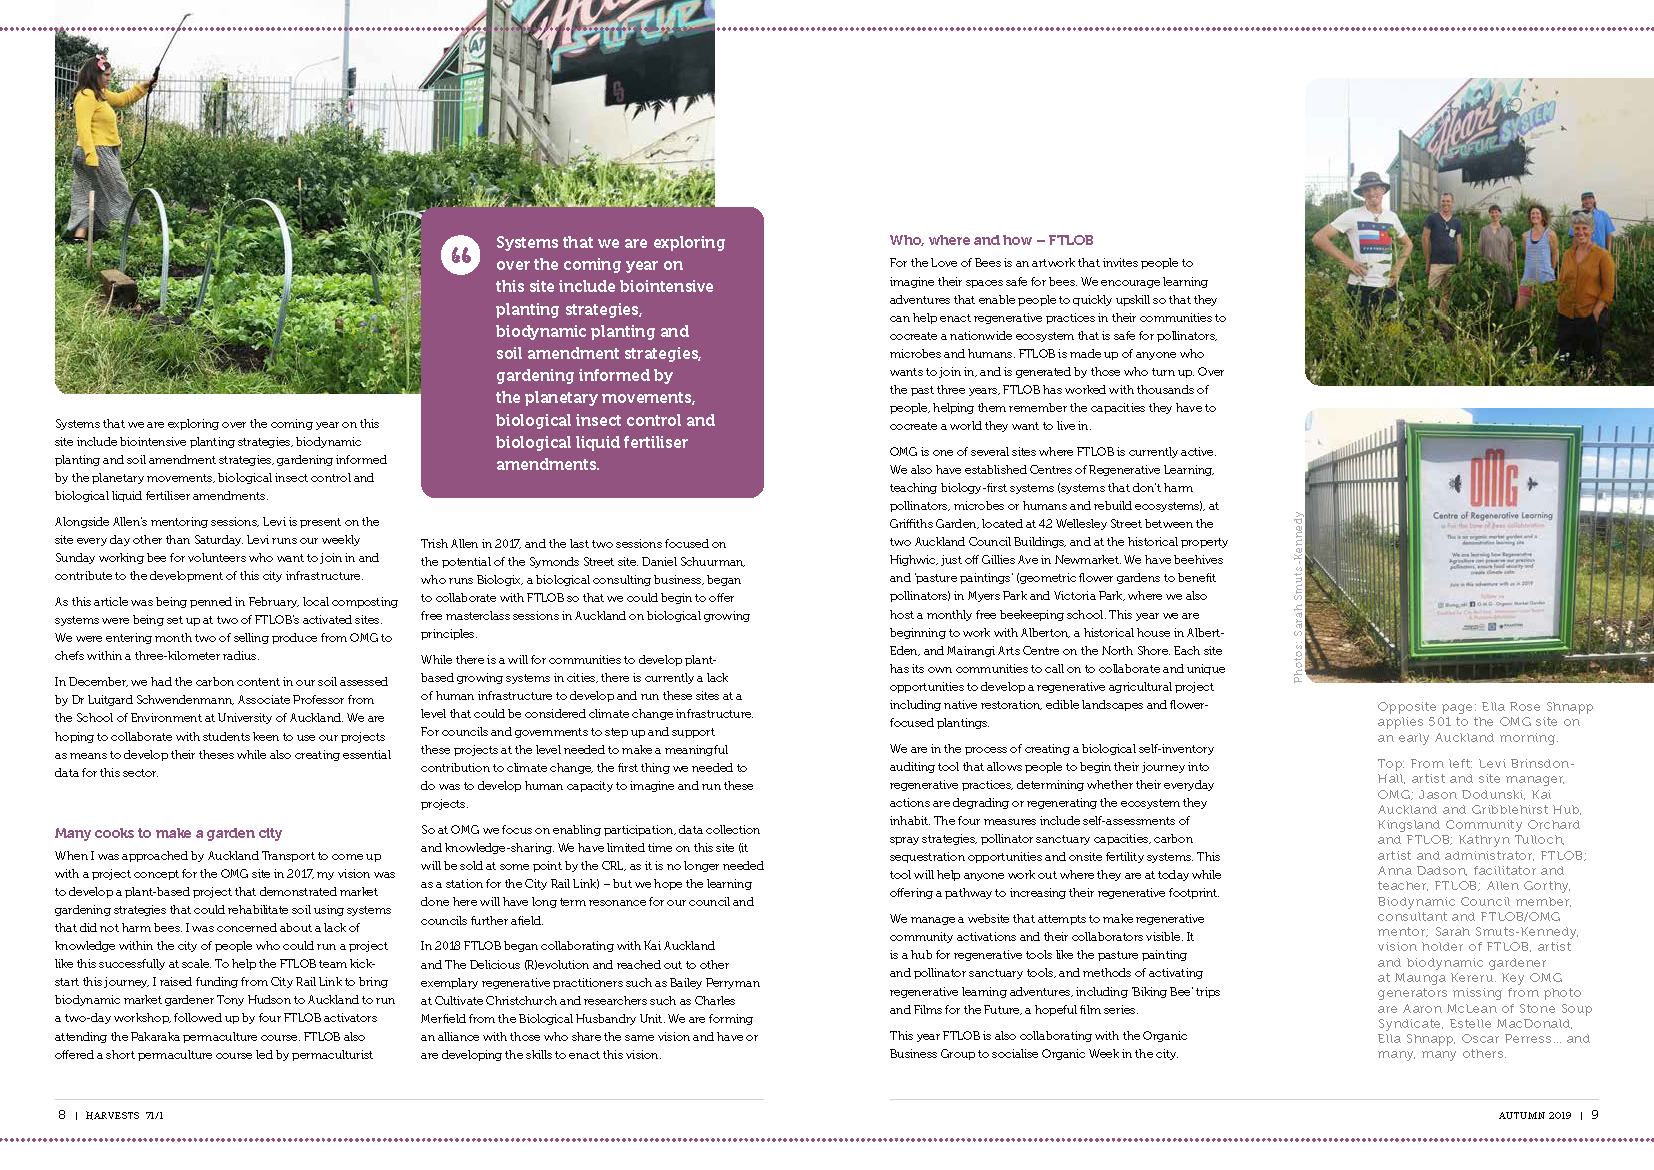 OMG article Harvests magazine (1)_Page_3.png